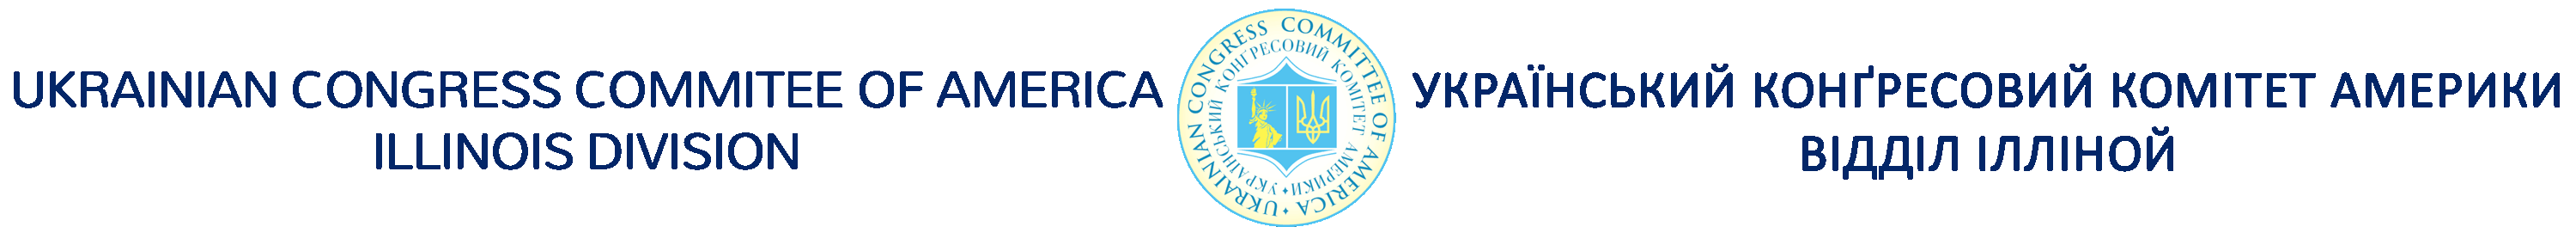 Ukrainian Congress Committee of America